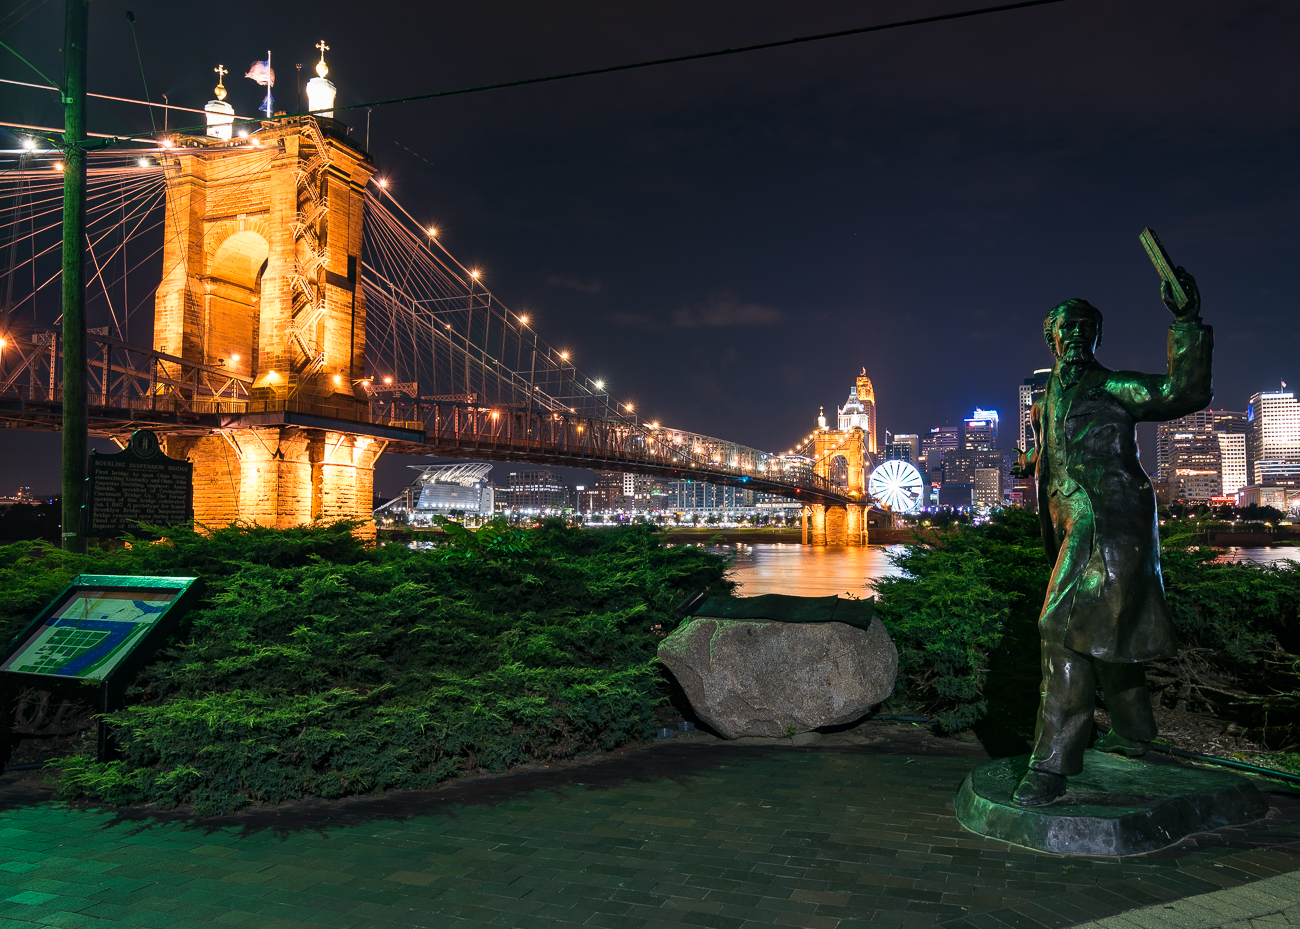 The John A. Roebling statue stands next to the Roebling Bridge. It was installed in 1988 for Cincinnati's Bicentennial. / Image: Phil Armstrong, Cincinnati Refined // Published: 9.24.18